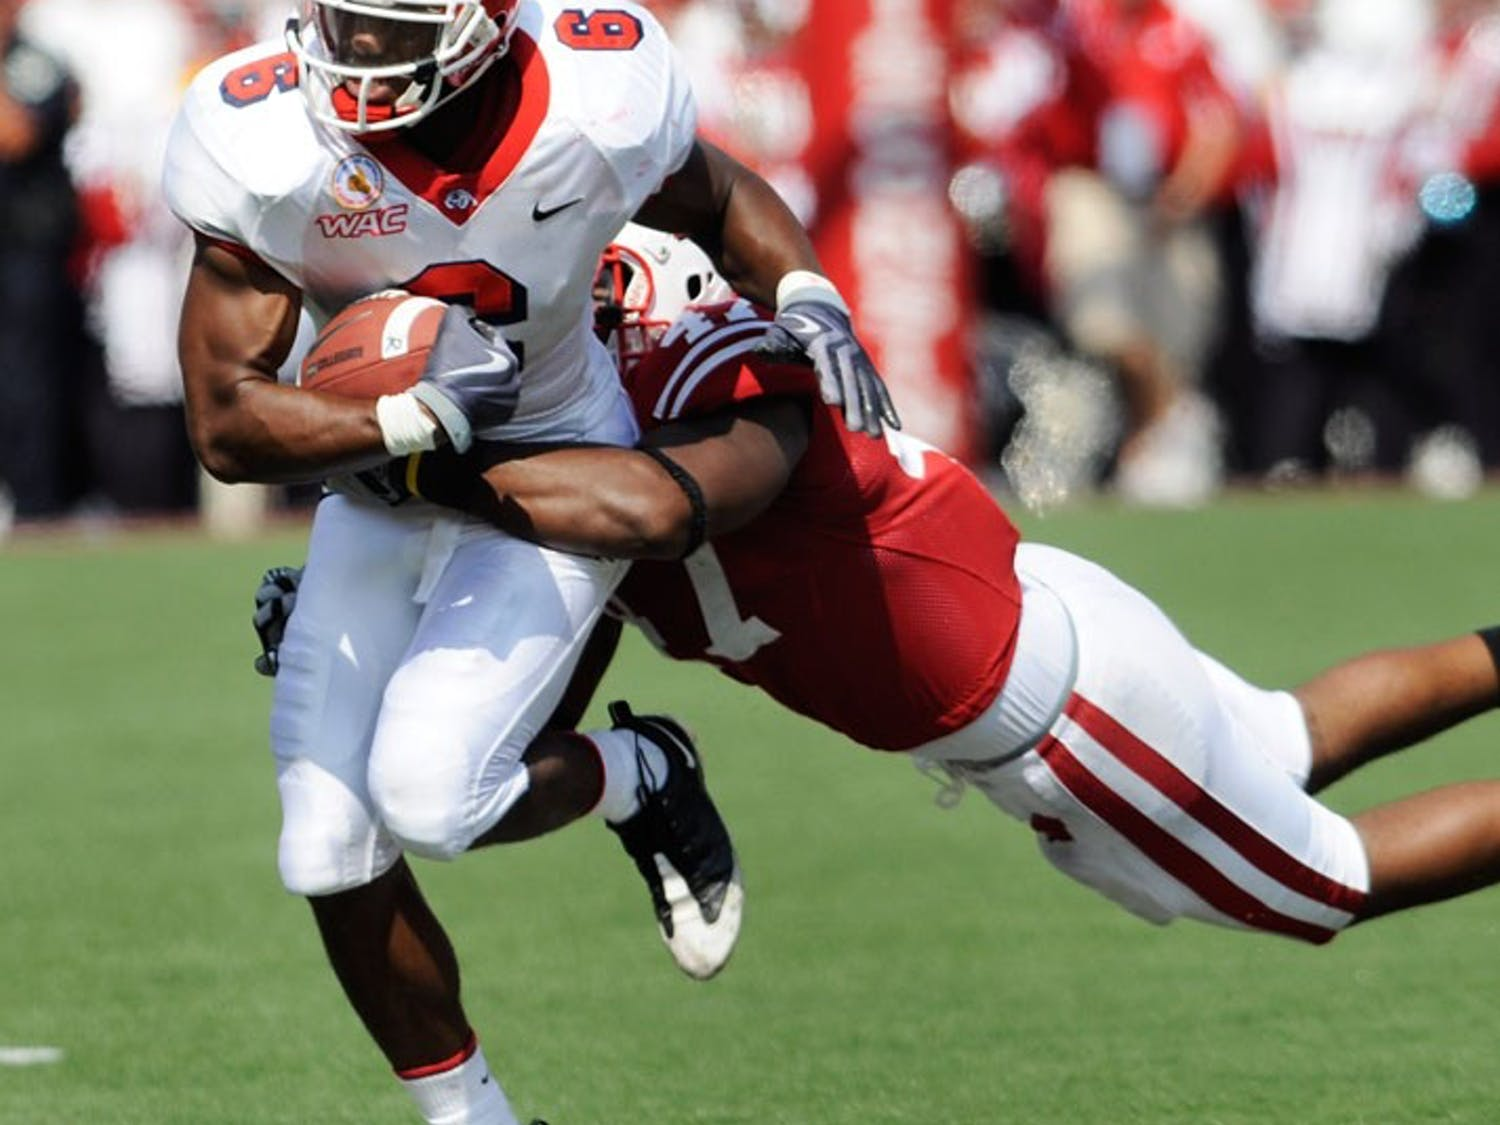 Terriers' unique offense could test Wisconsin